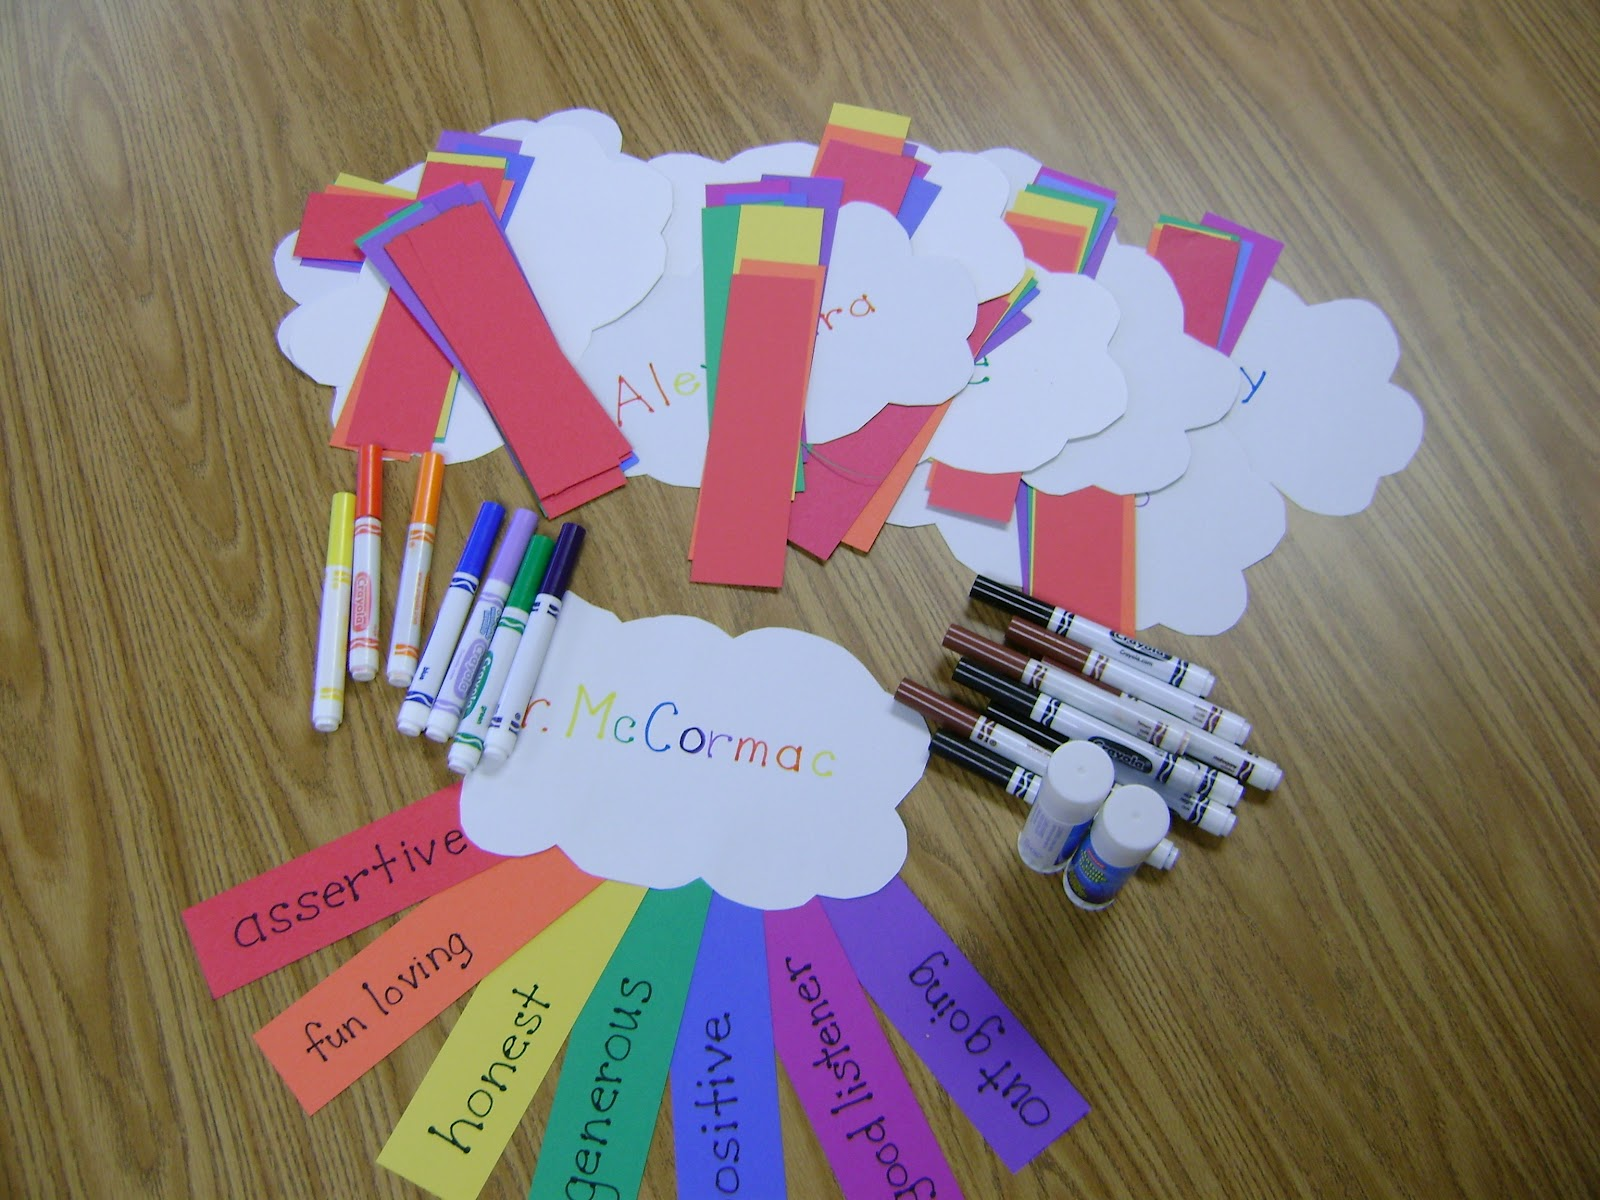 Rainbow Activity These Ideas Are Adapted From The Pictures I Saw On Pinterest First And Second Graders Love Activities They Can Be Used To